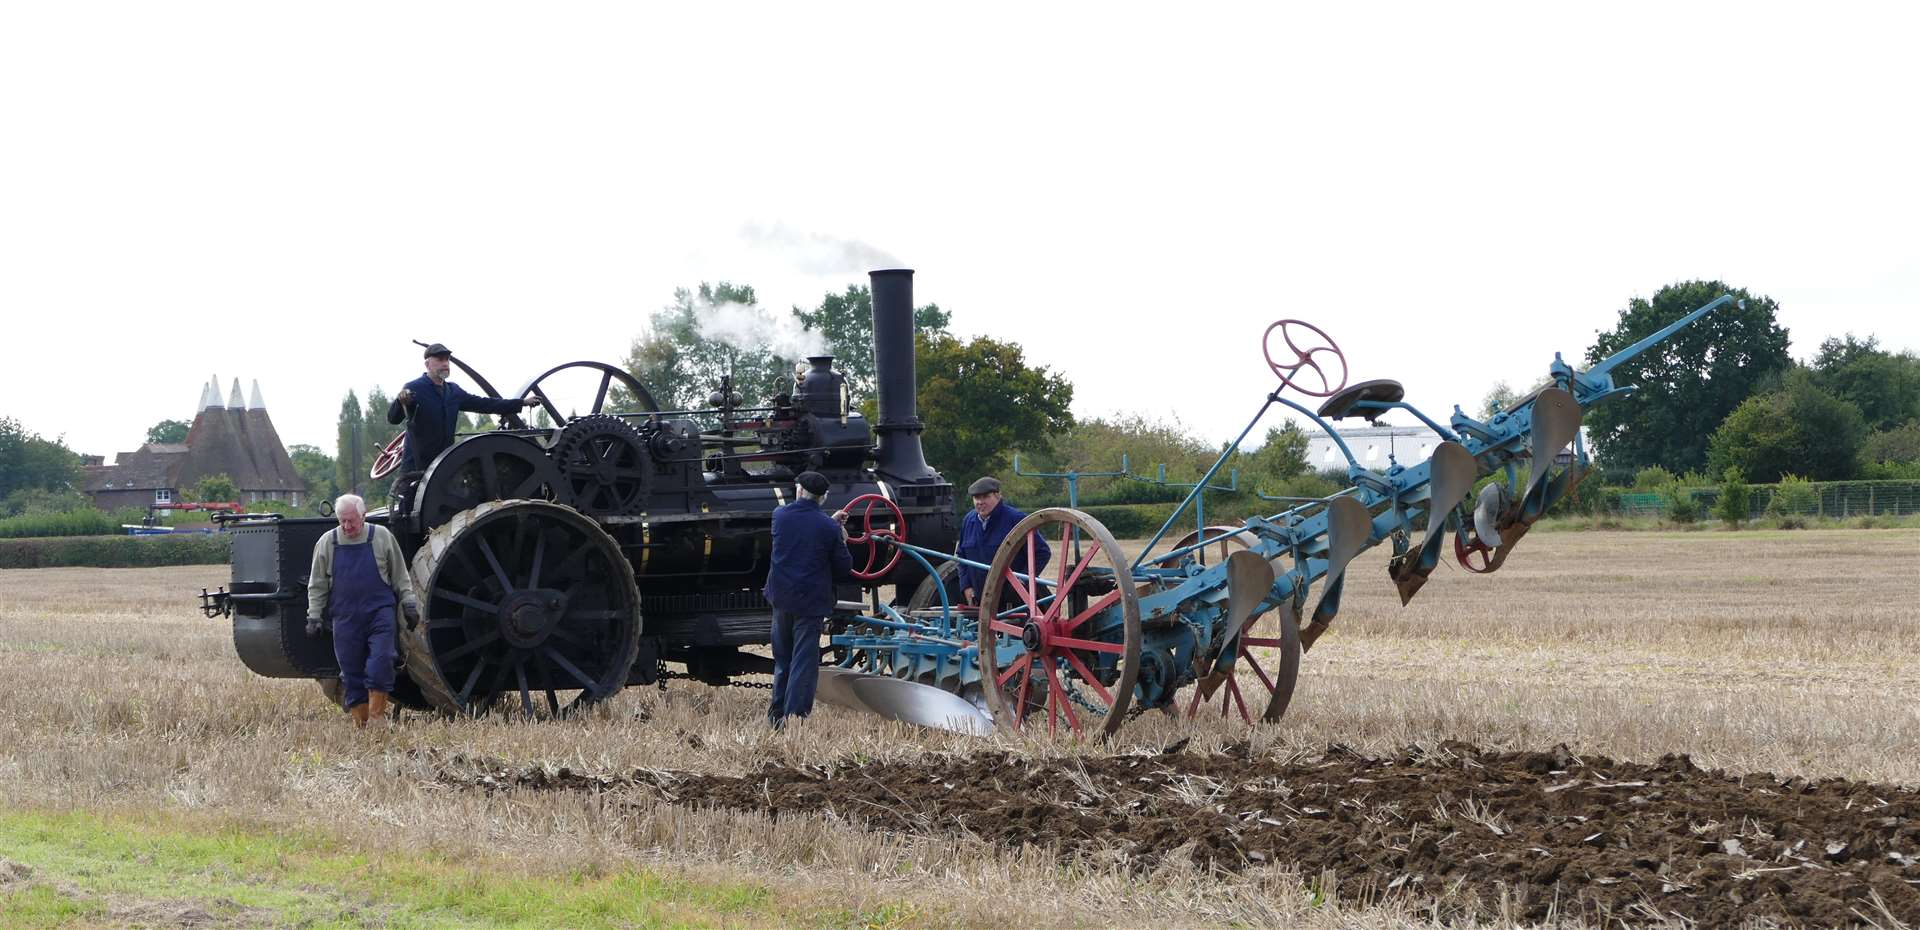 The Weald of Kent Ploughing Match will be held in Headcorn